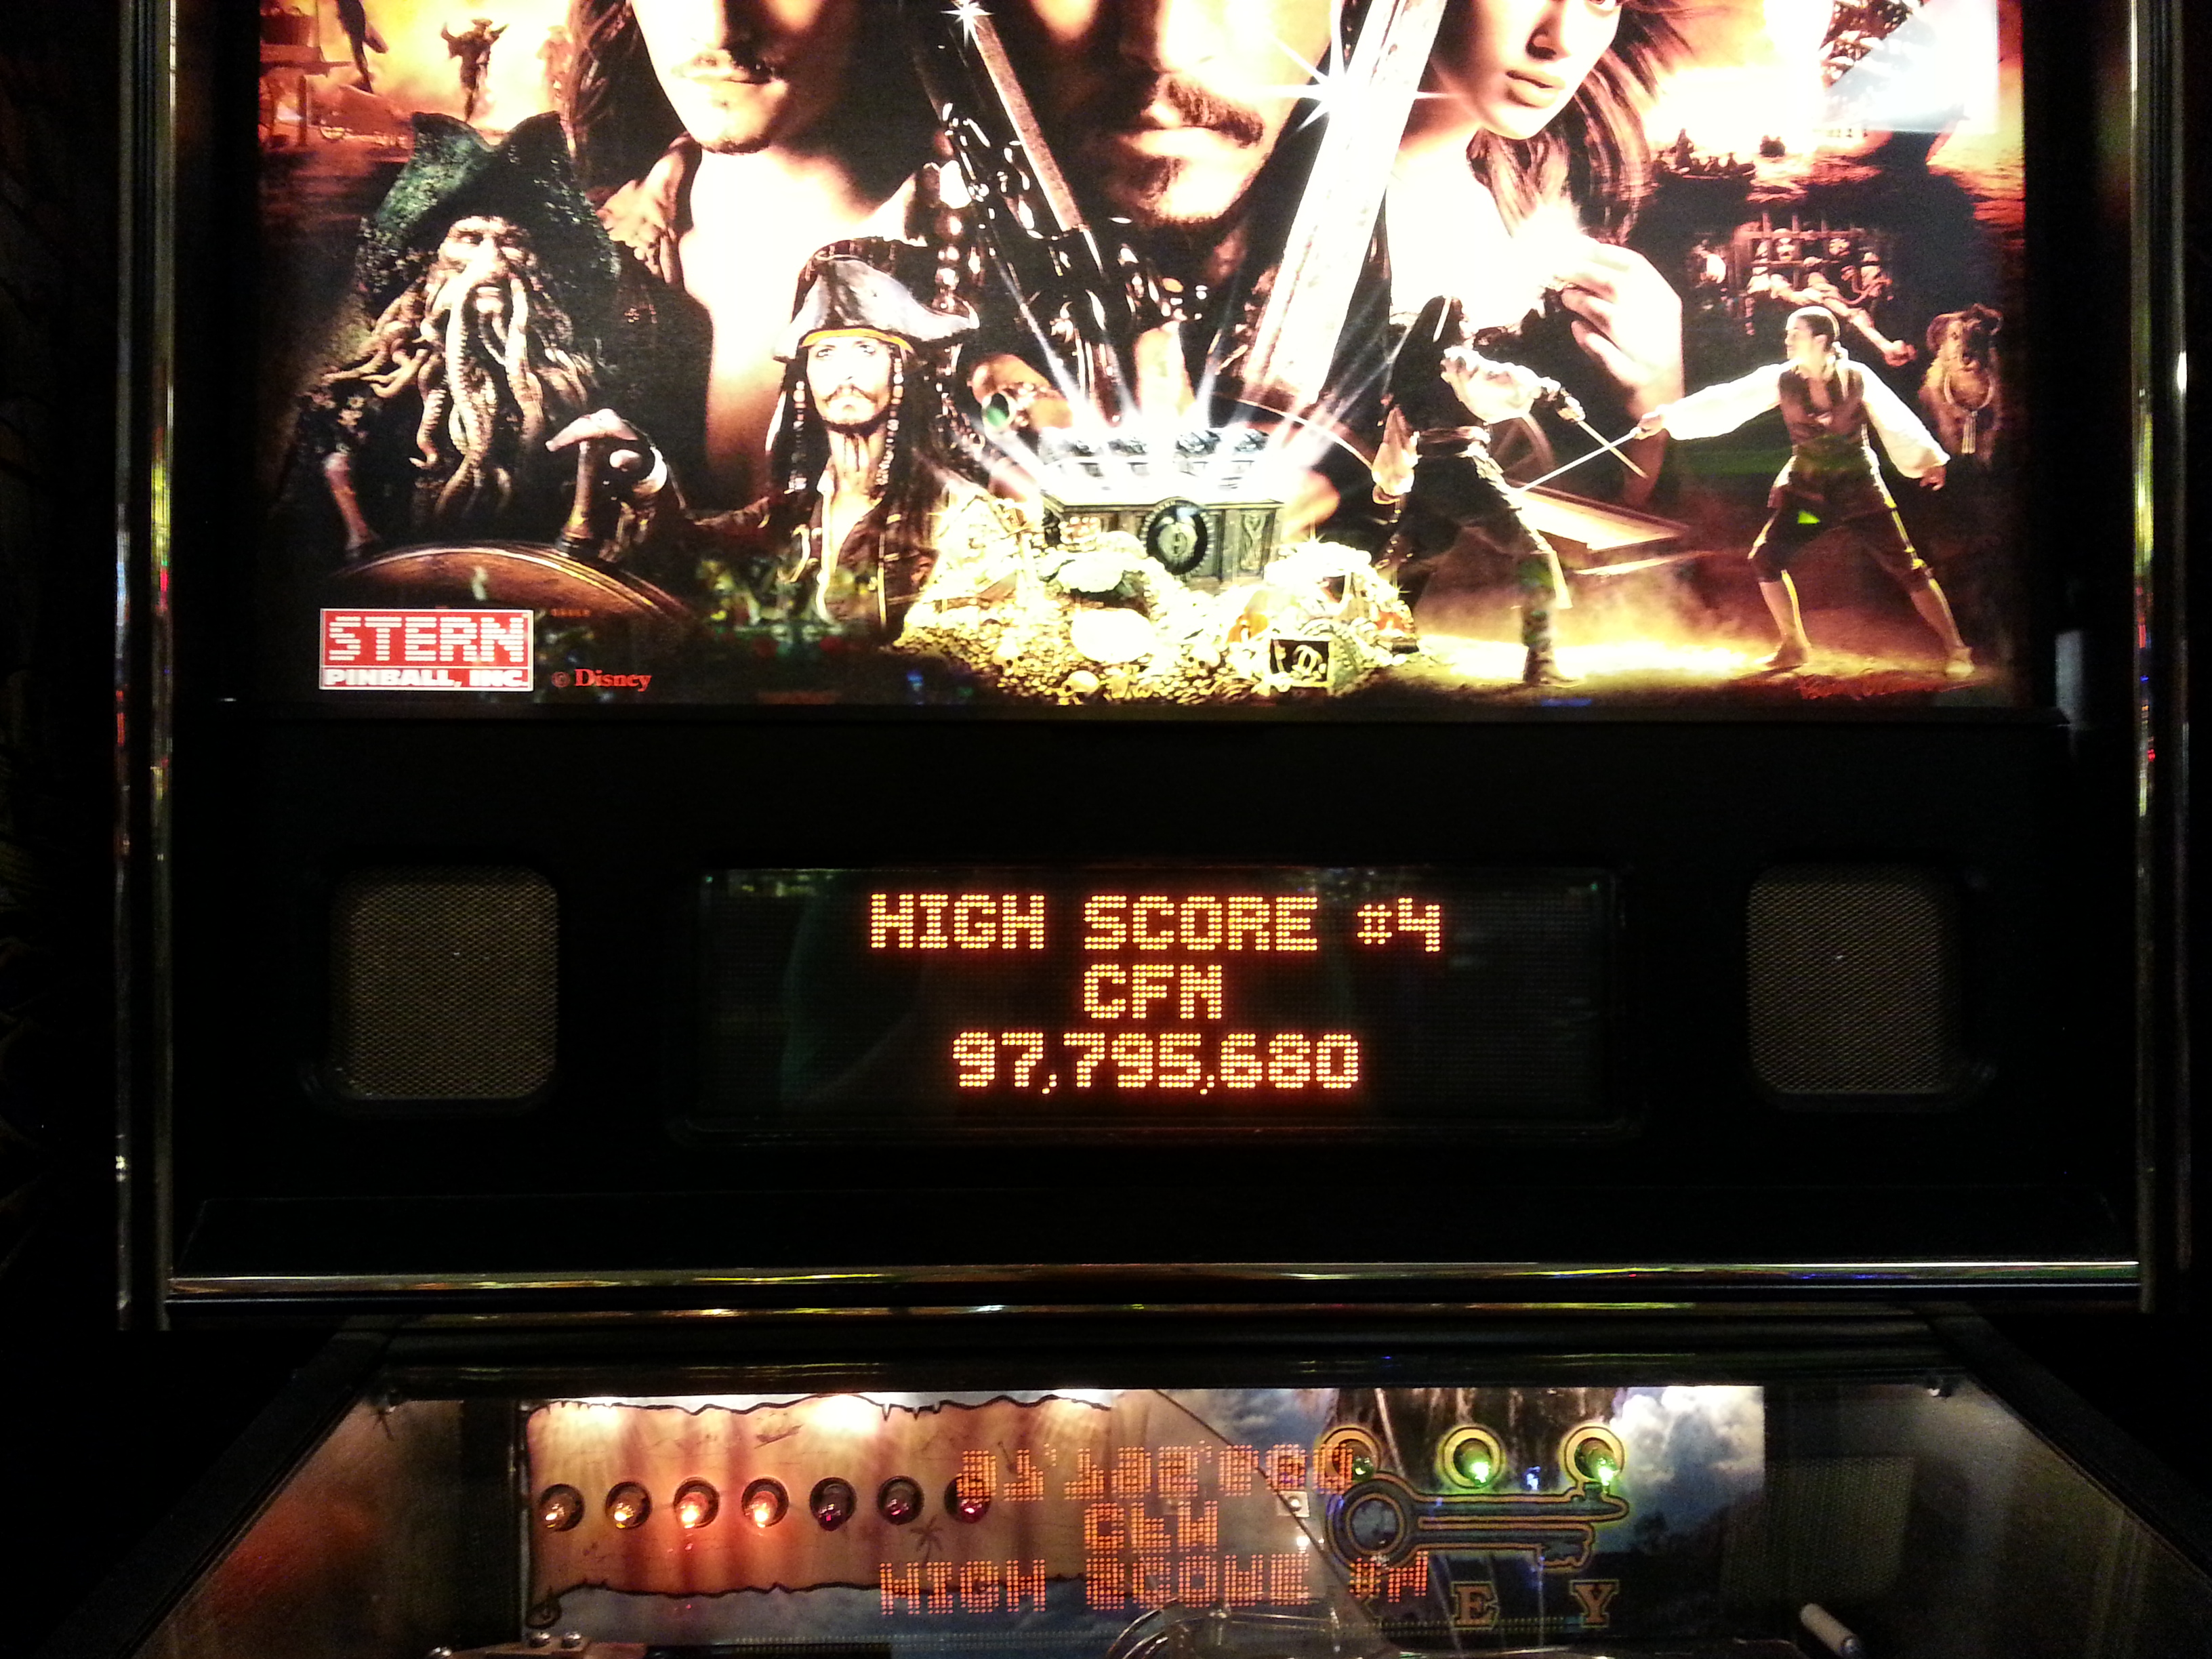 ceafin: Pirates of the Caribbean (Pinball: 3 Balls) 97,795,680 points on 2014-09-28 13:41:19